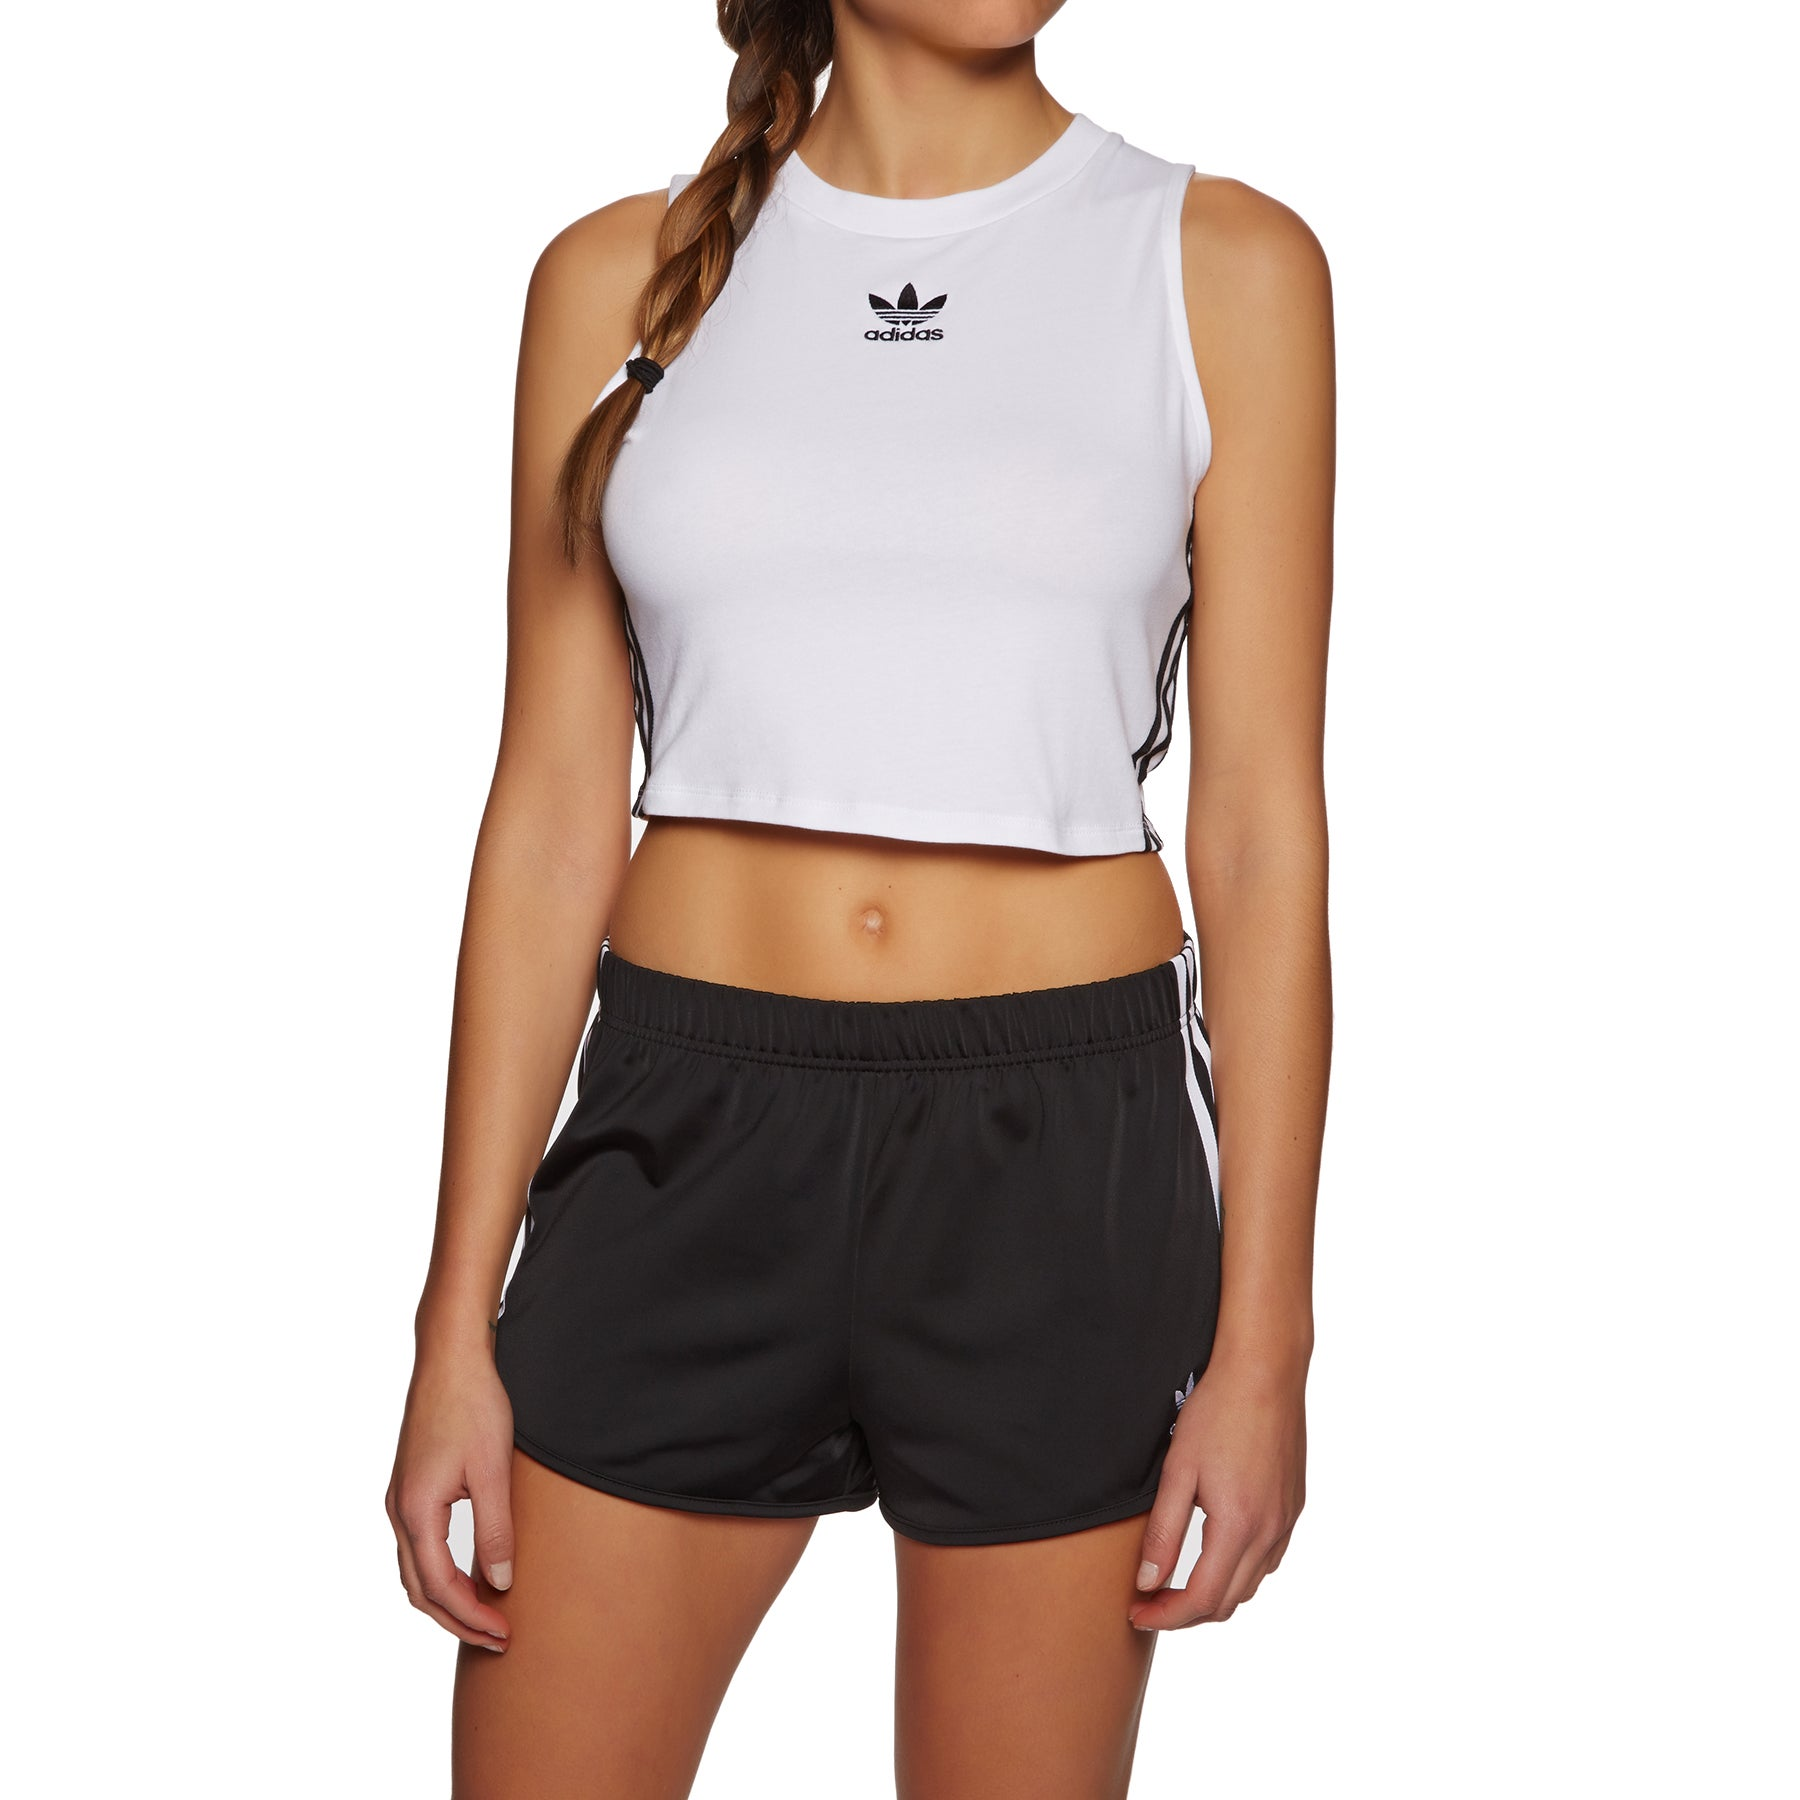 Adidas Originals Crop Womens Tank Vest - White Black